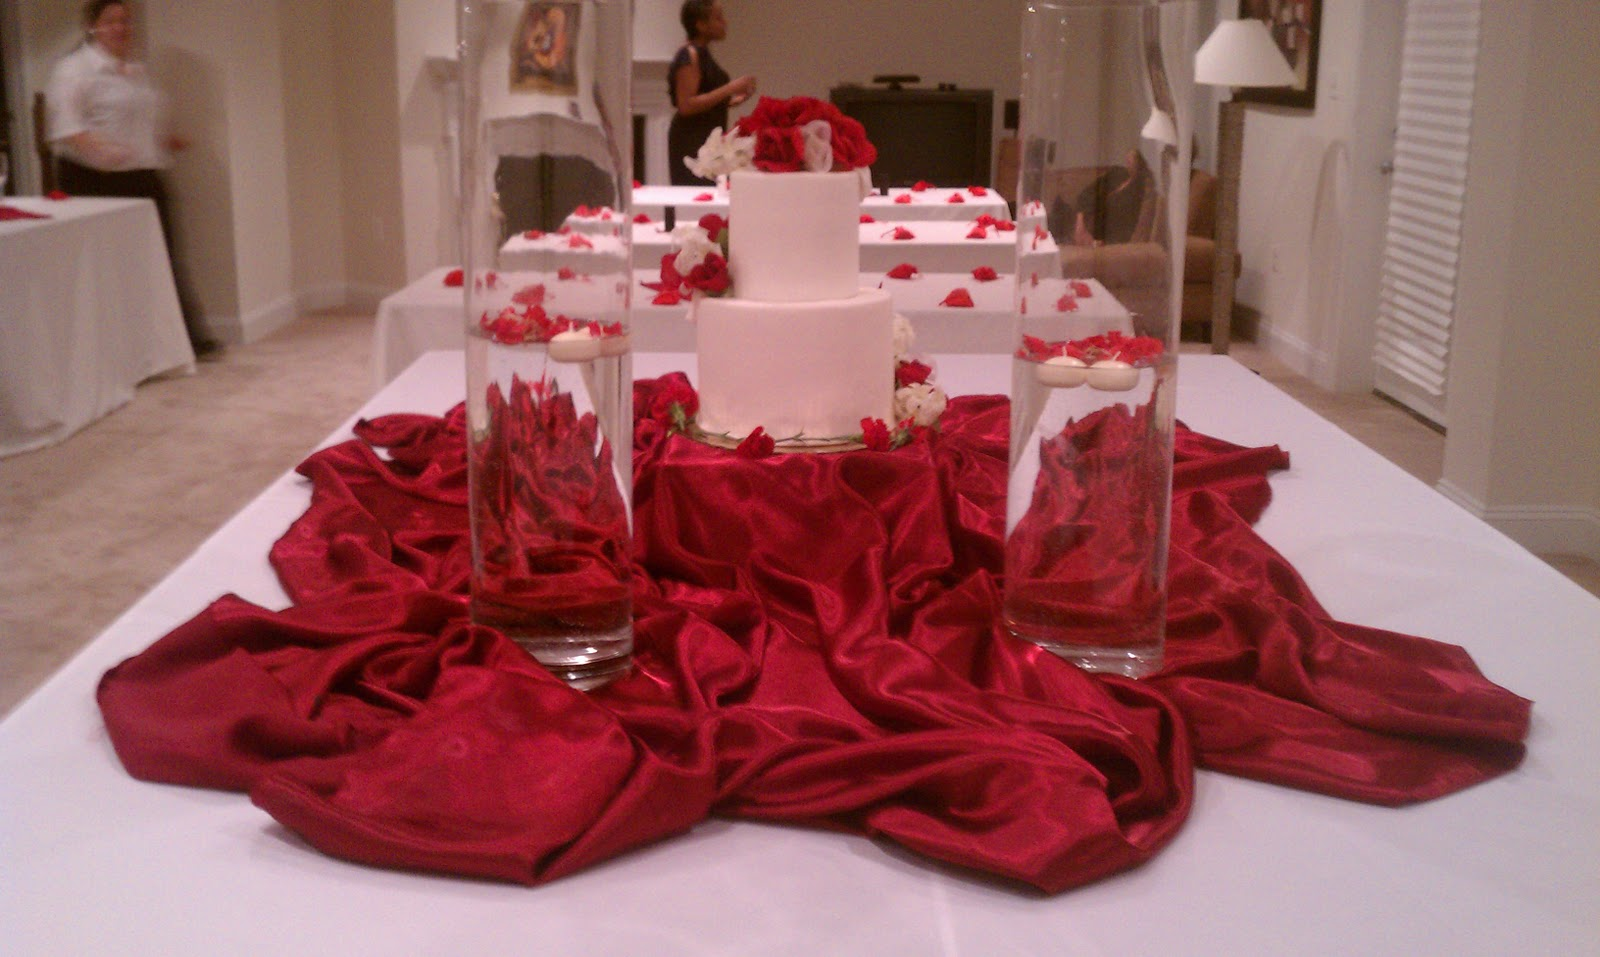 chair cover rentals alexandria va beach covers for sale le fabuleux events and party springfield